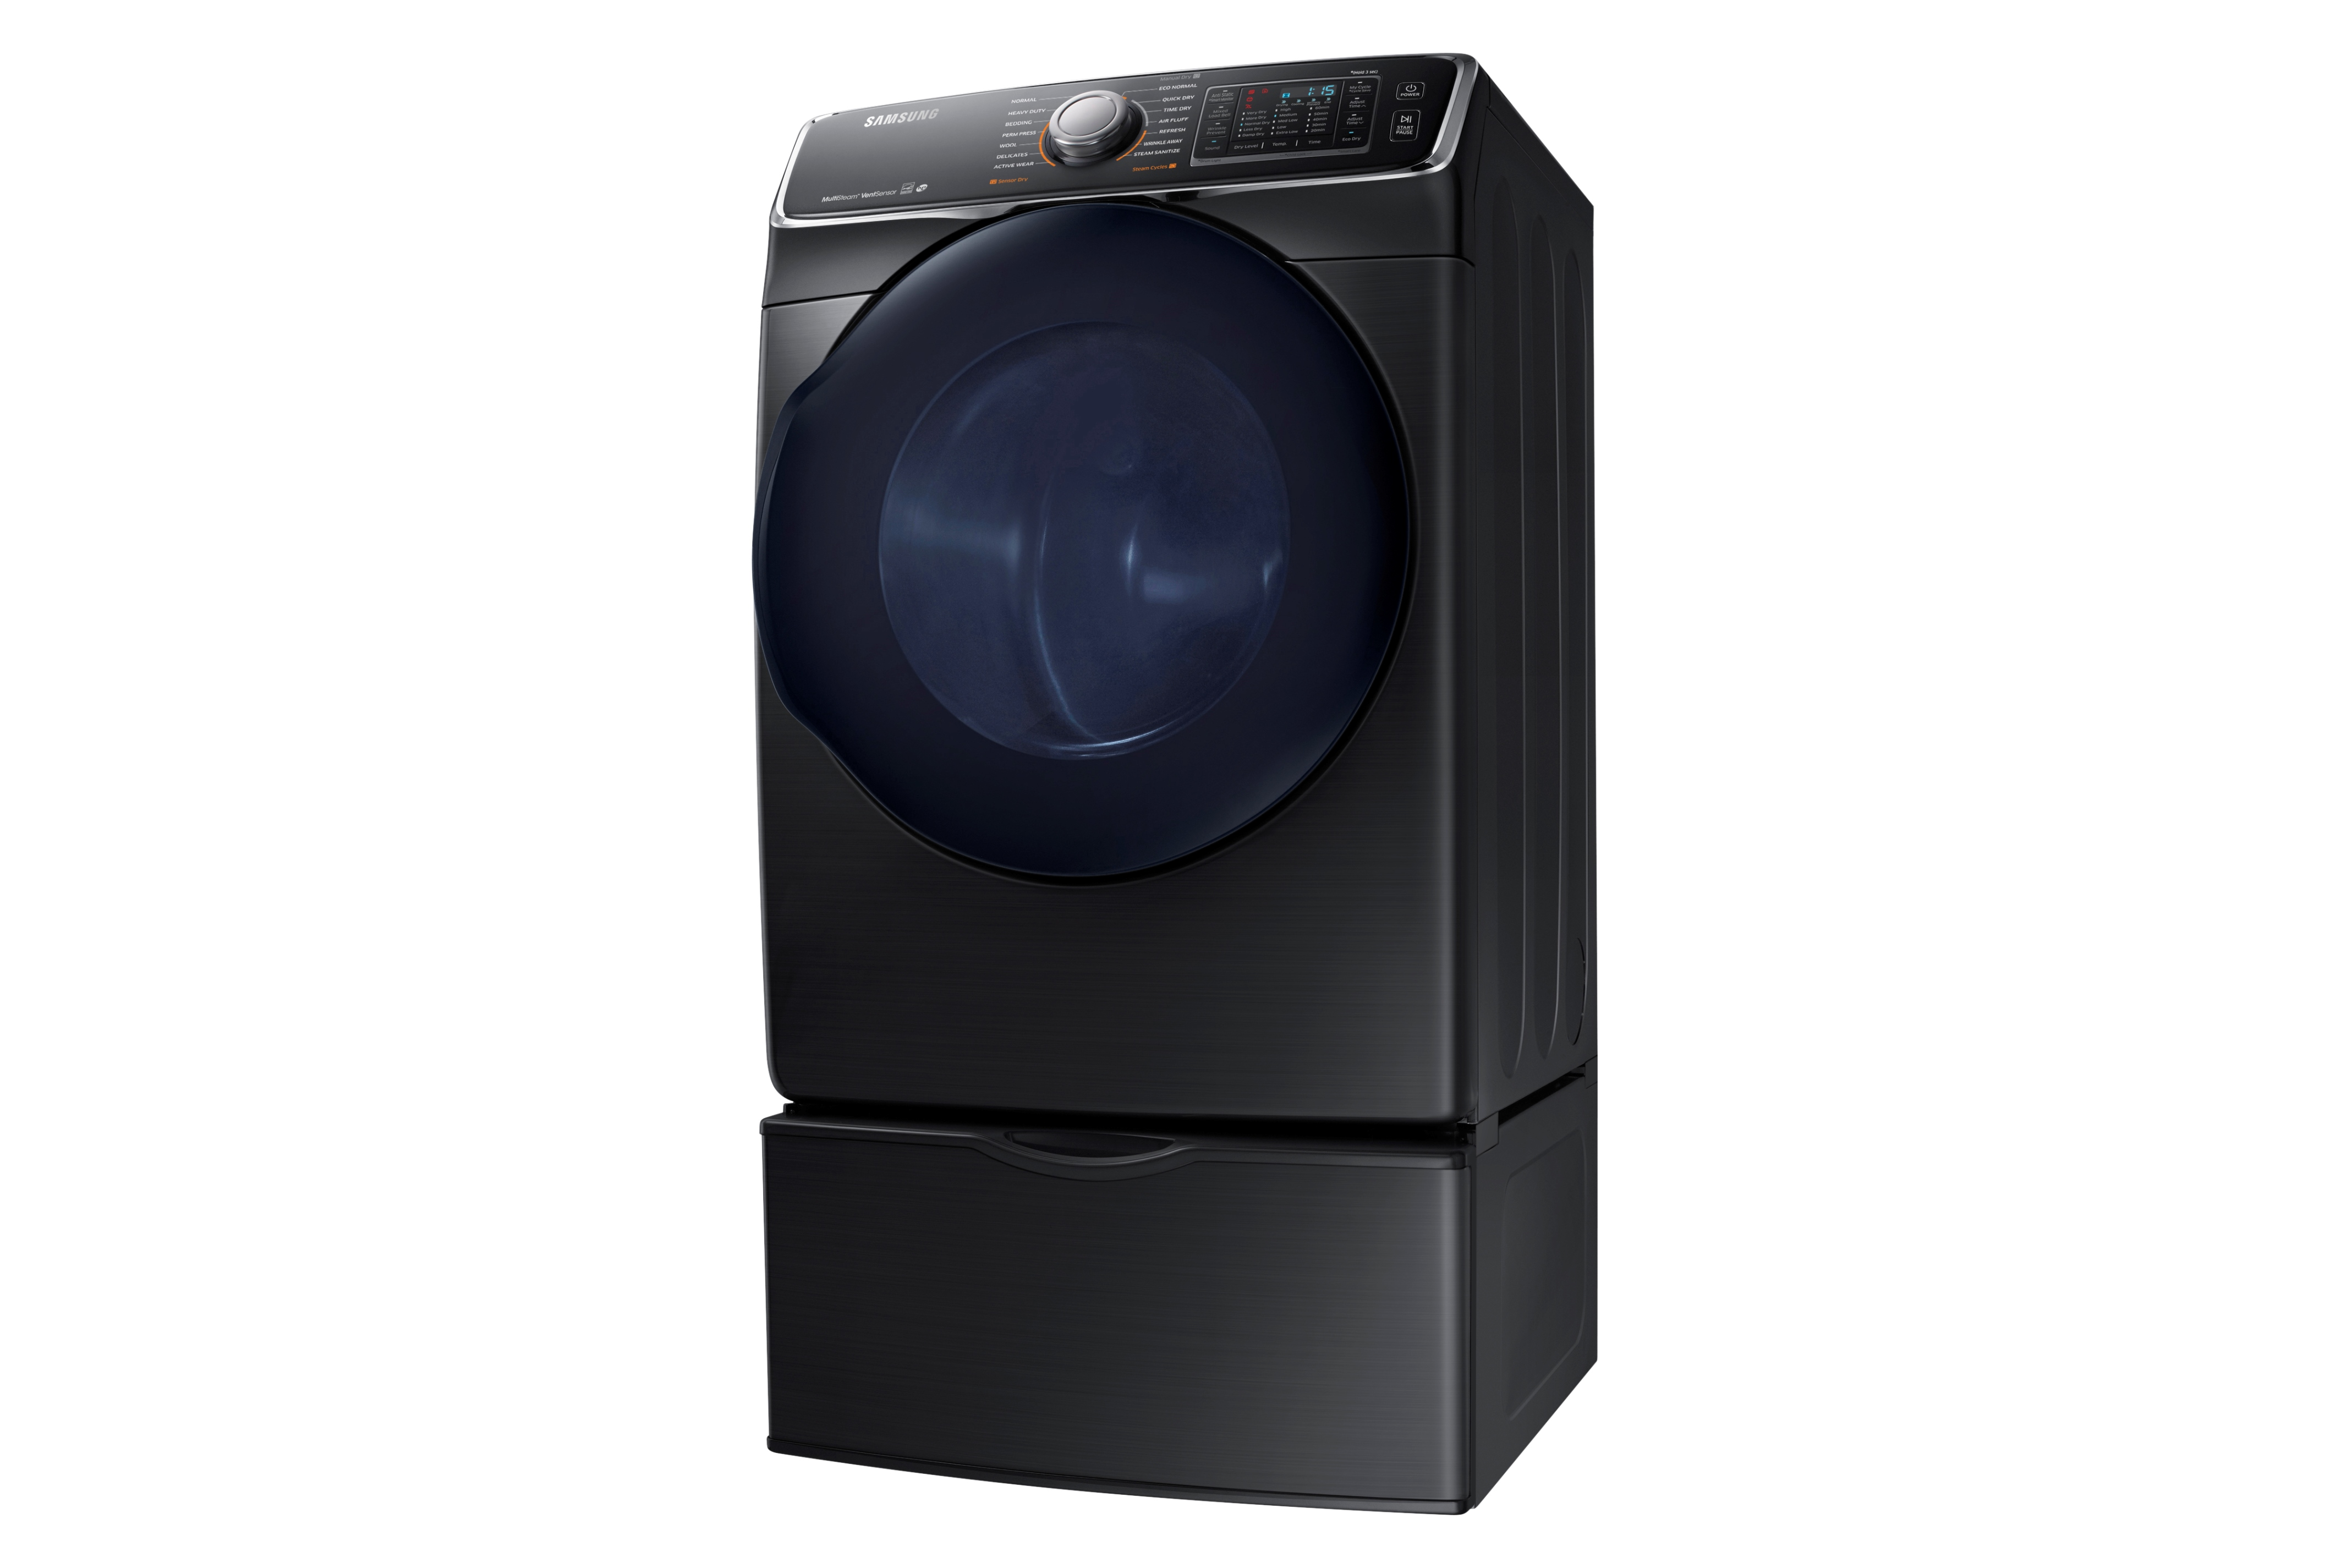 Samsung DV45K6500EV 7.5 cu. ft. Capacity Electric Dryer Black Stainless